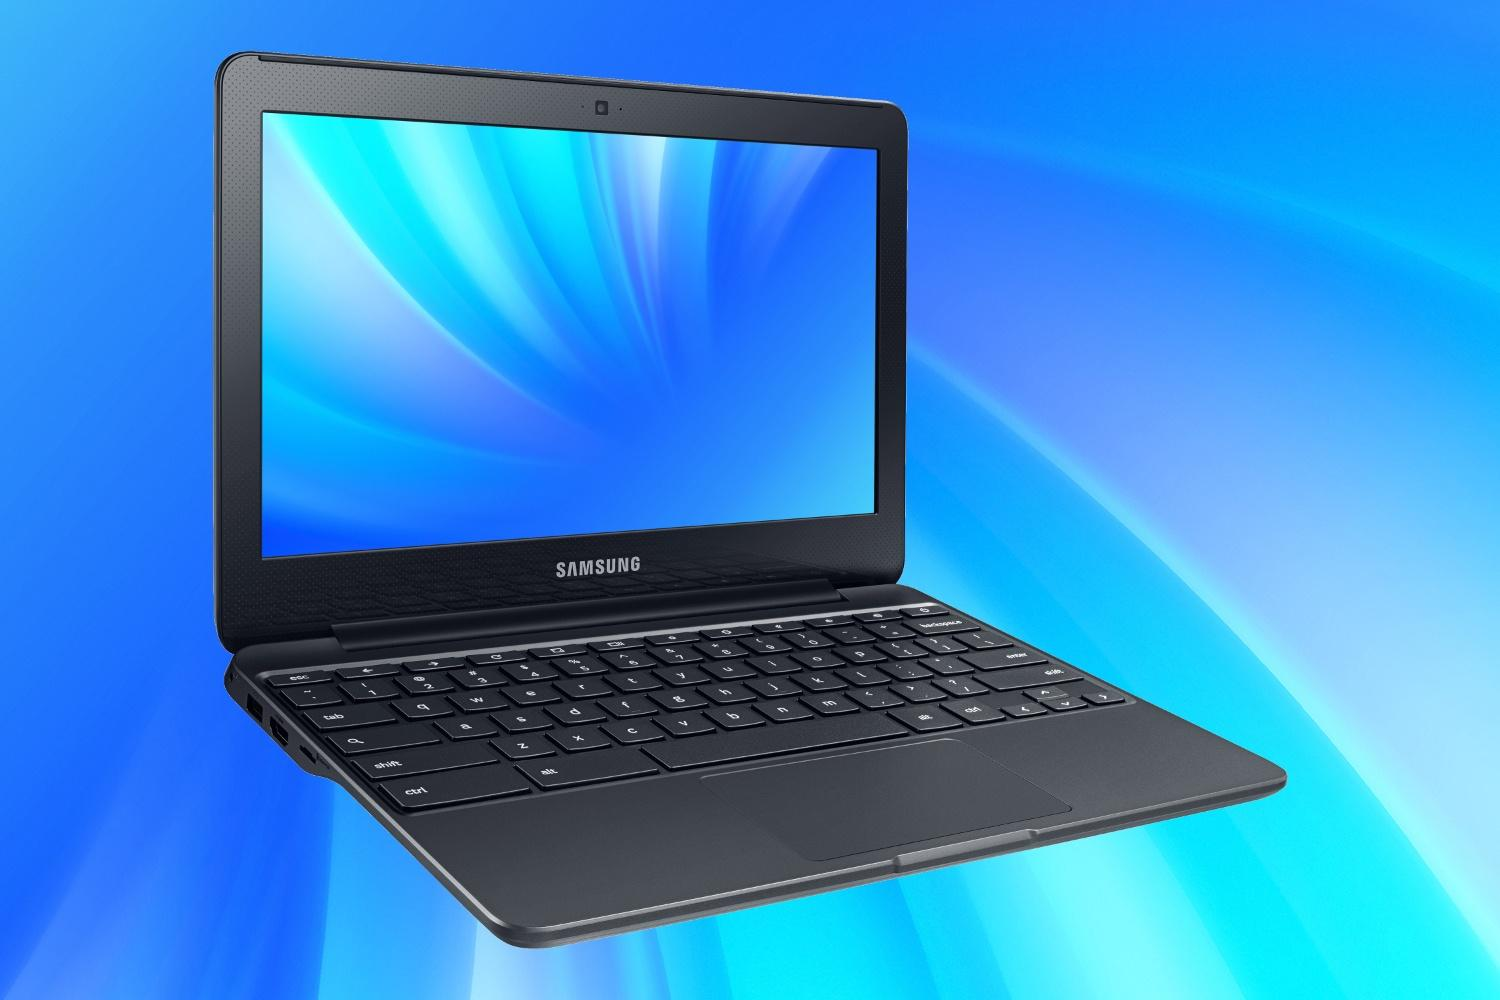 Samsung lifts the veil on its light, durable Chromebook 3, and it's only $200